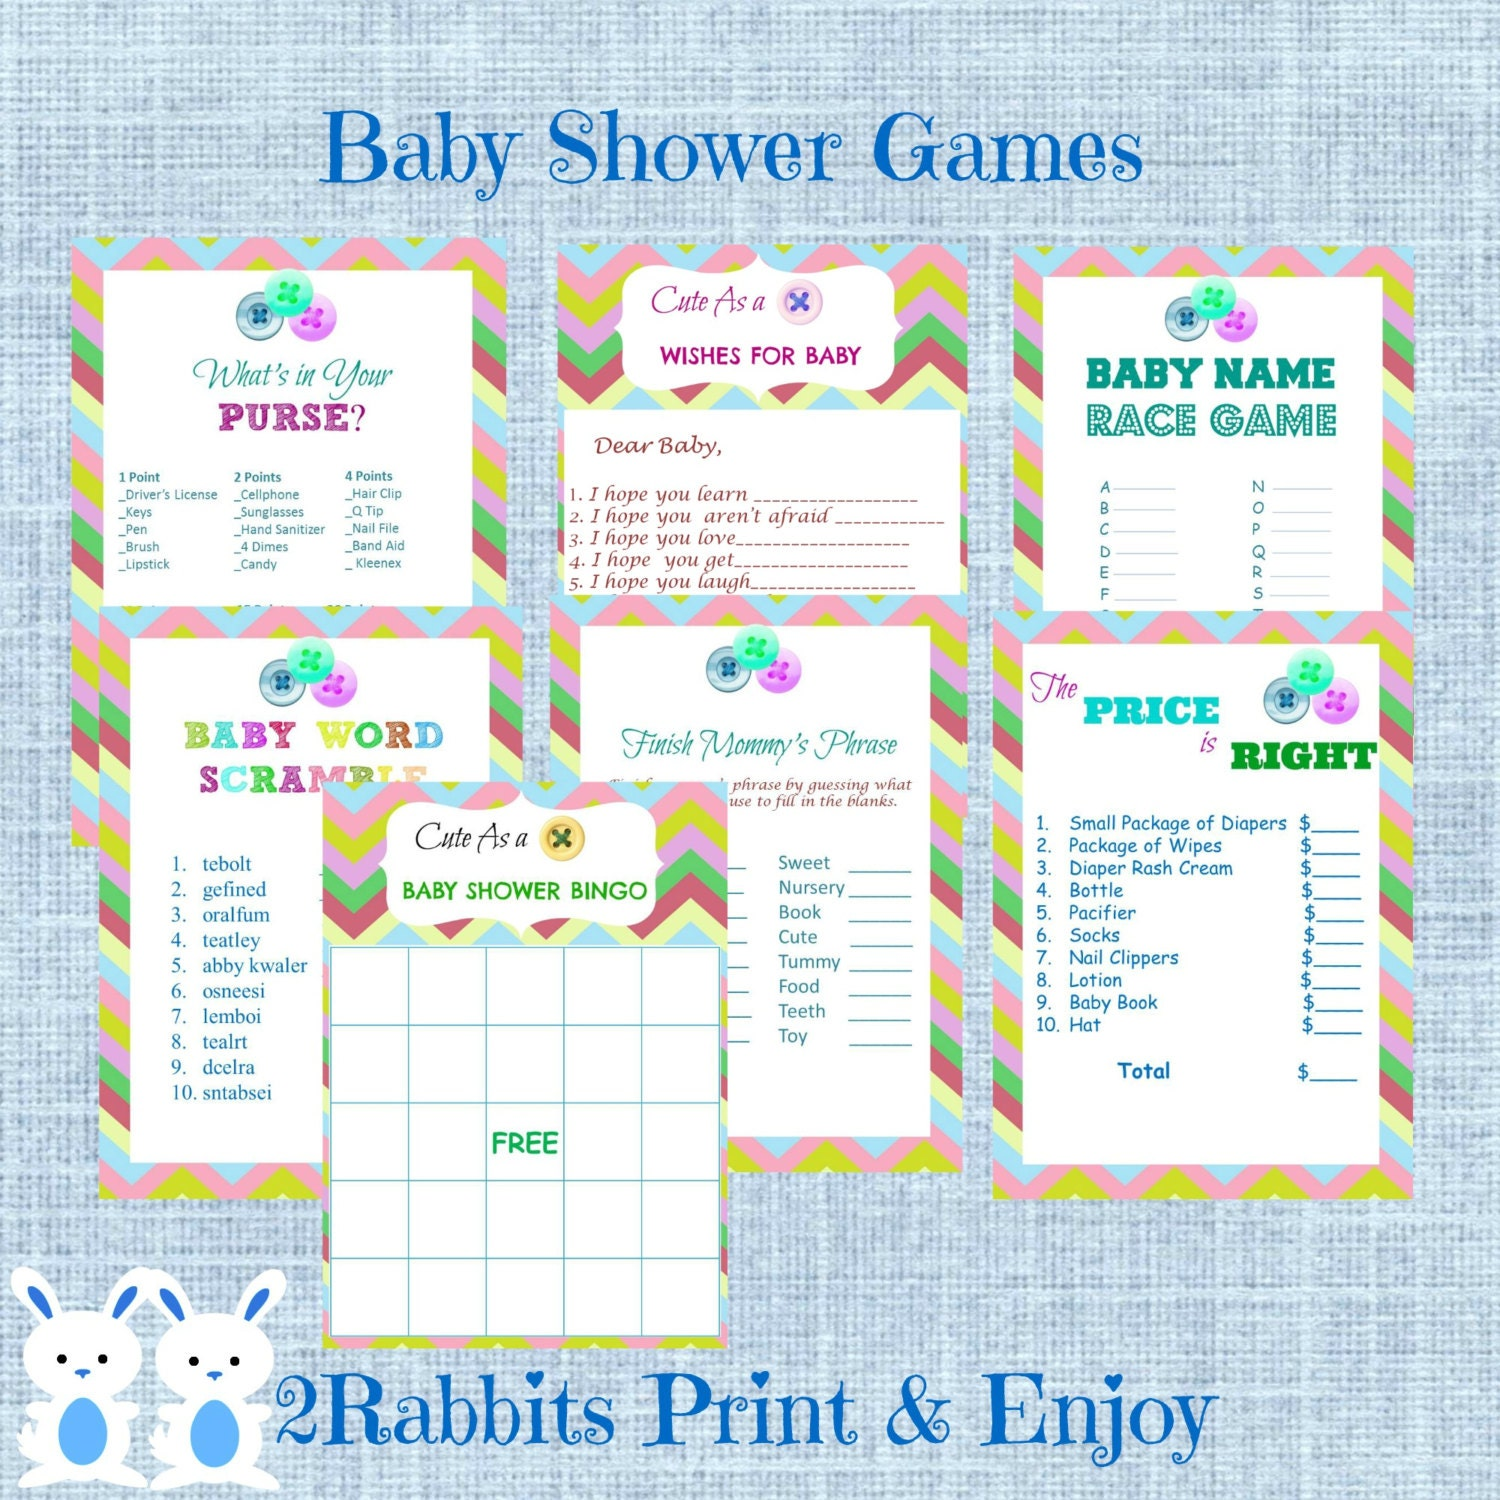 Cute As A Button Baby Shower Games Pack 7 Printable Games Name